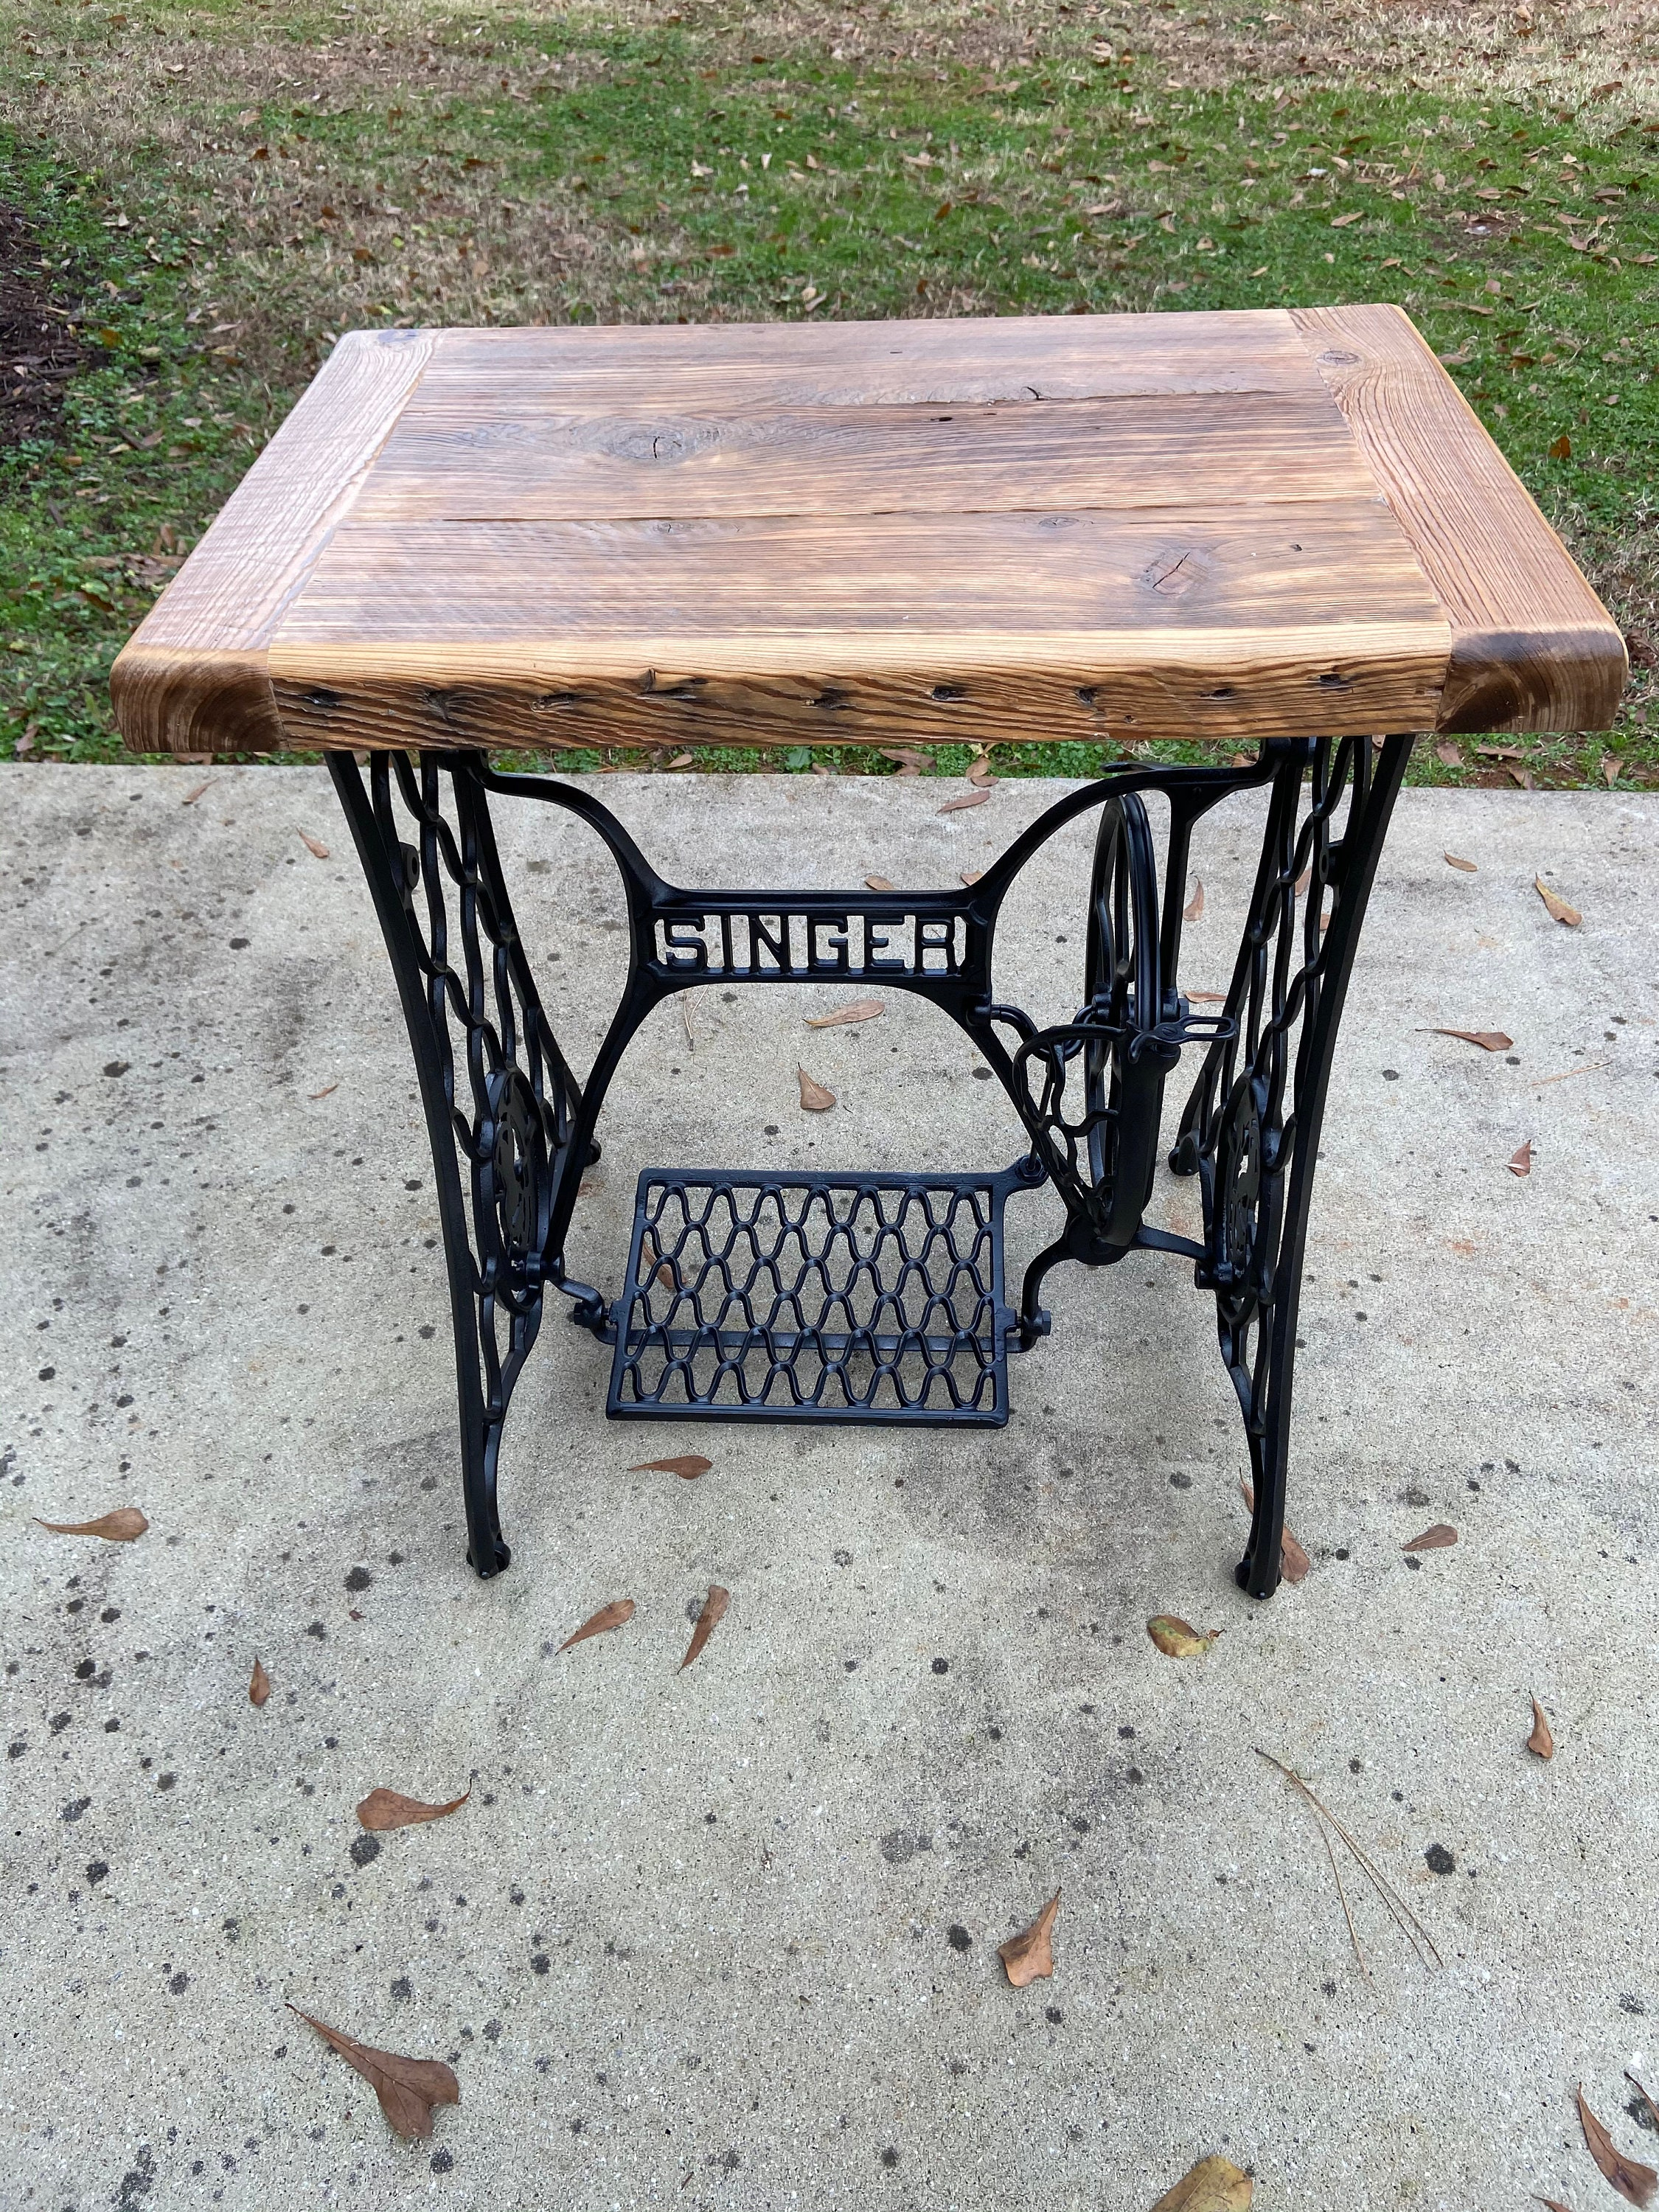 Early 1900's singer sewing machine with reclaimed cypress table top for sale